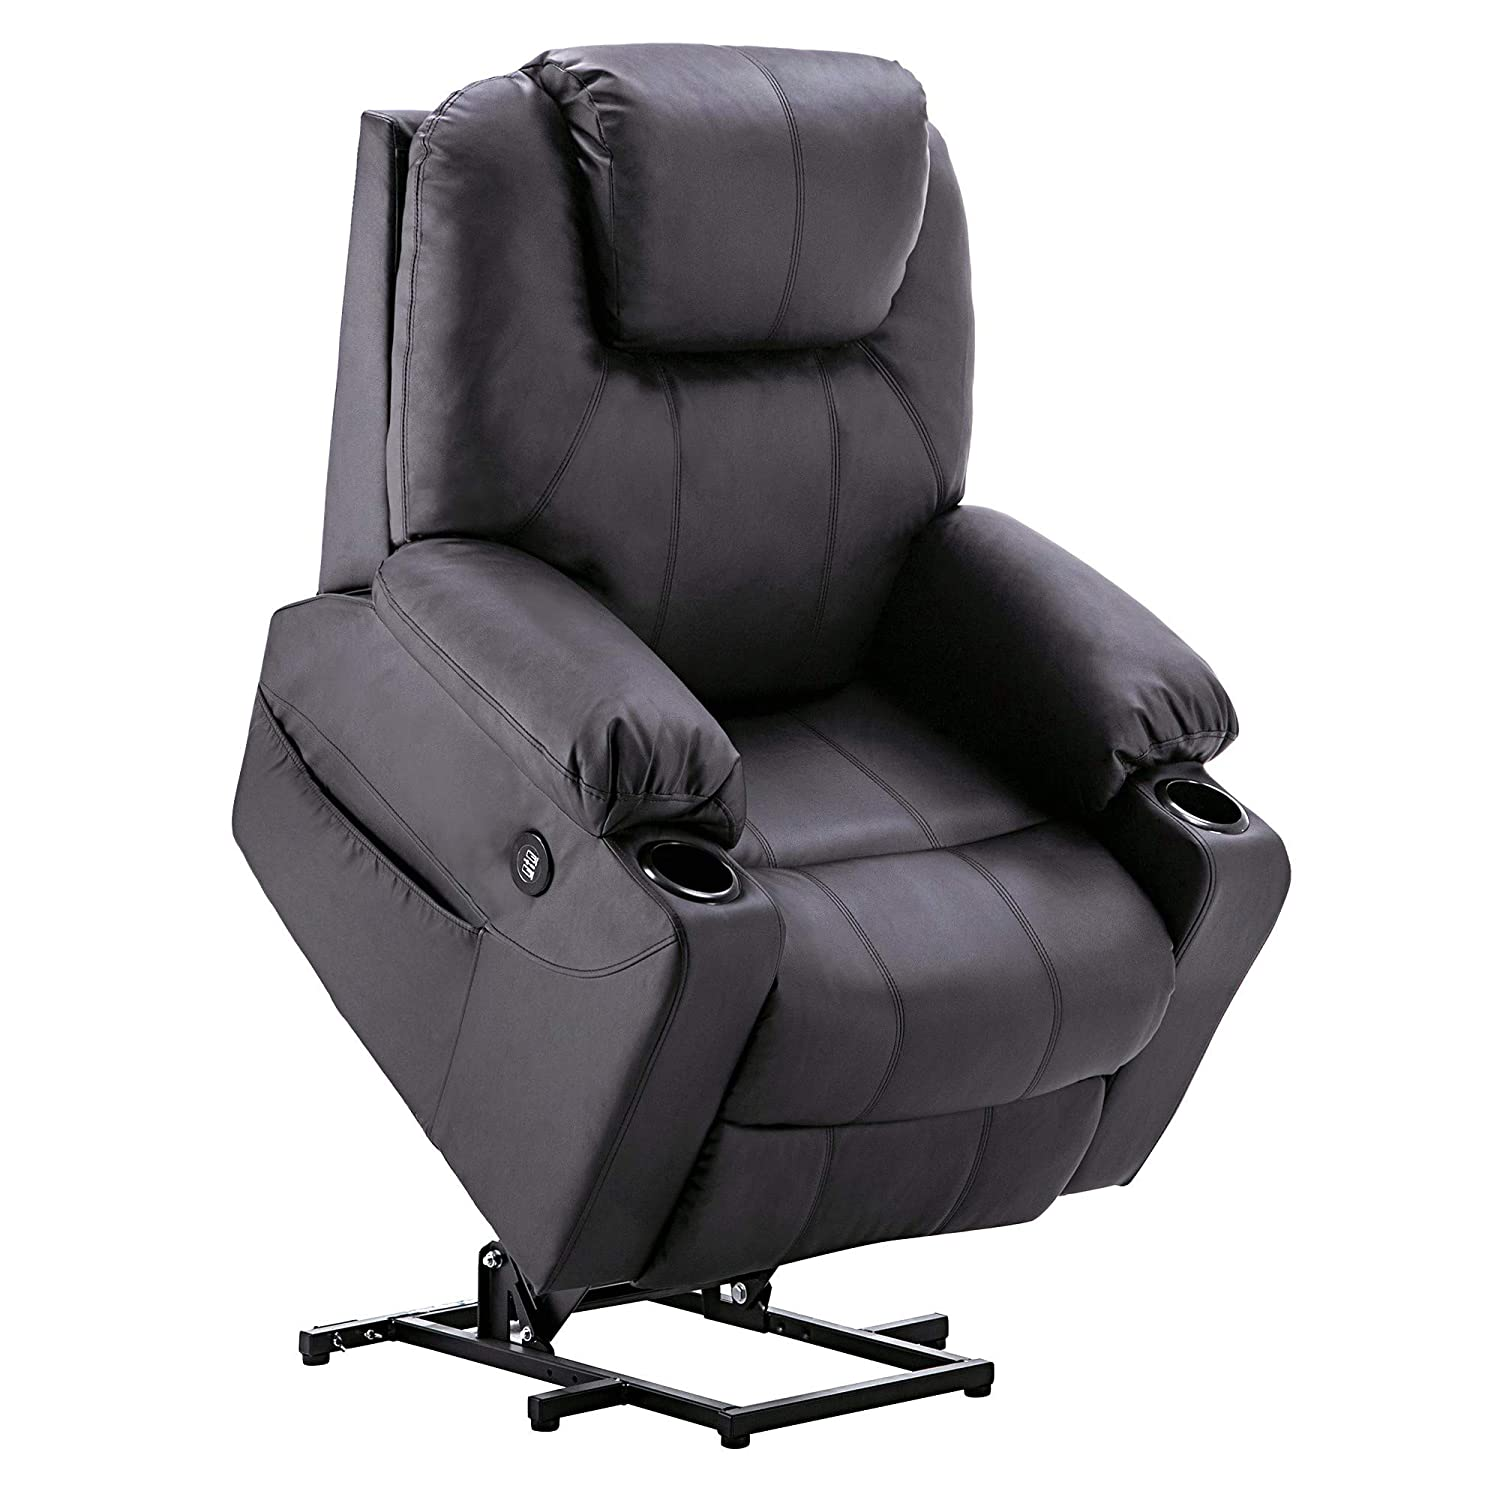 Cheap Electric Leather Recliner Chairs | Recliner Chair